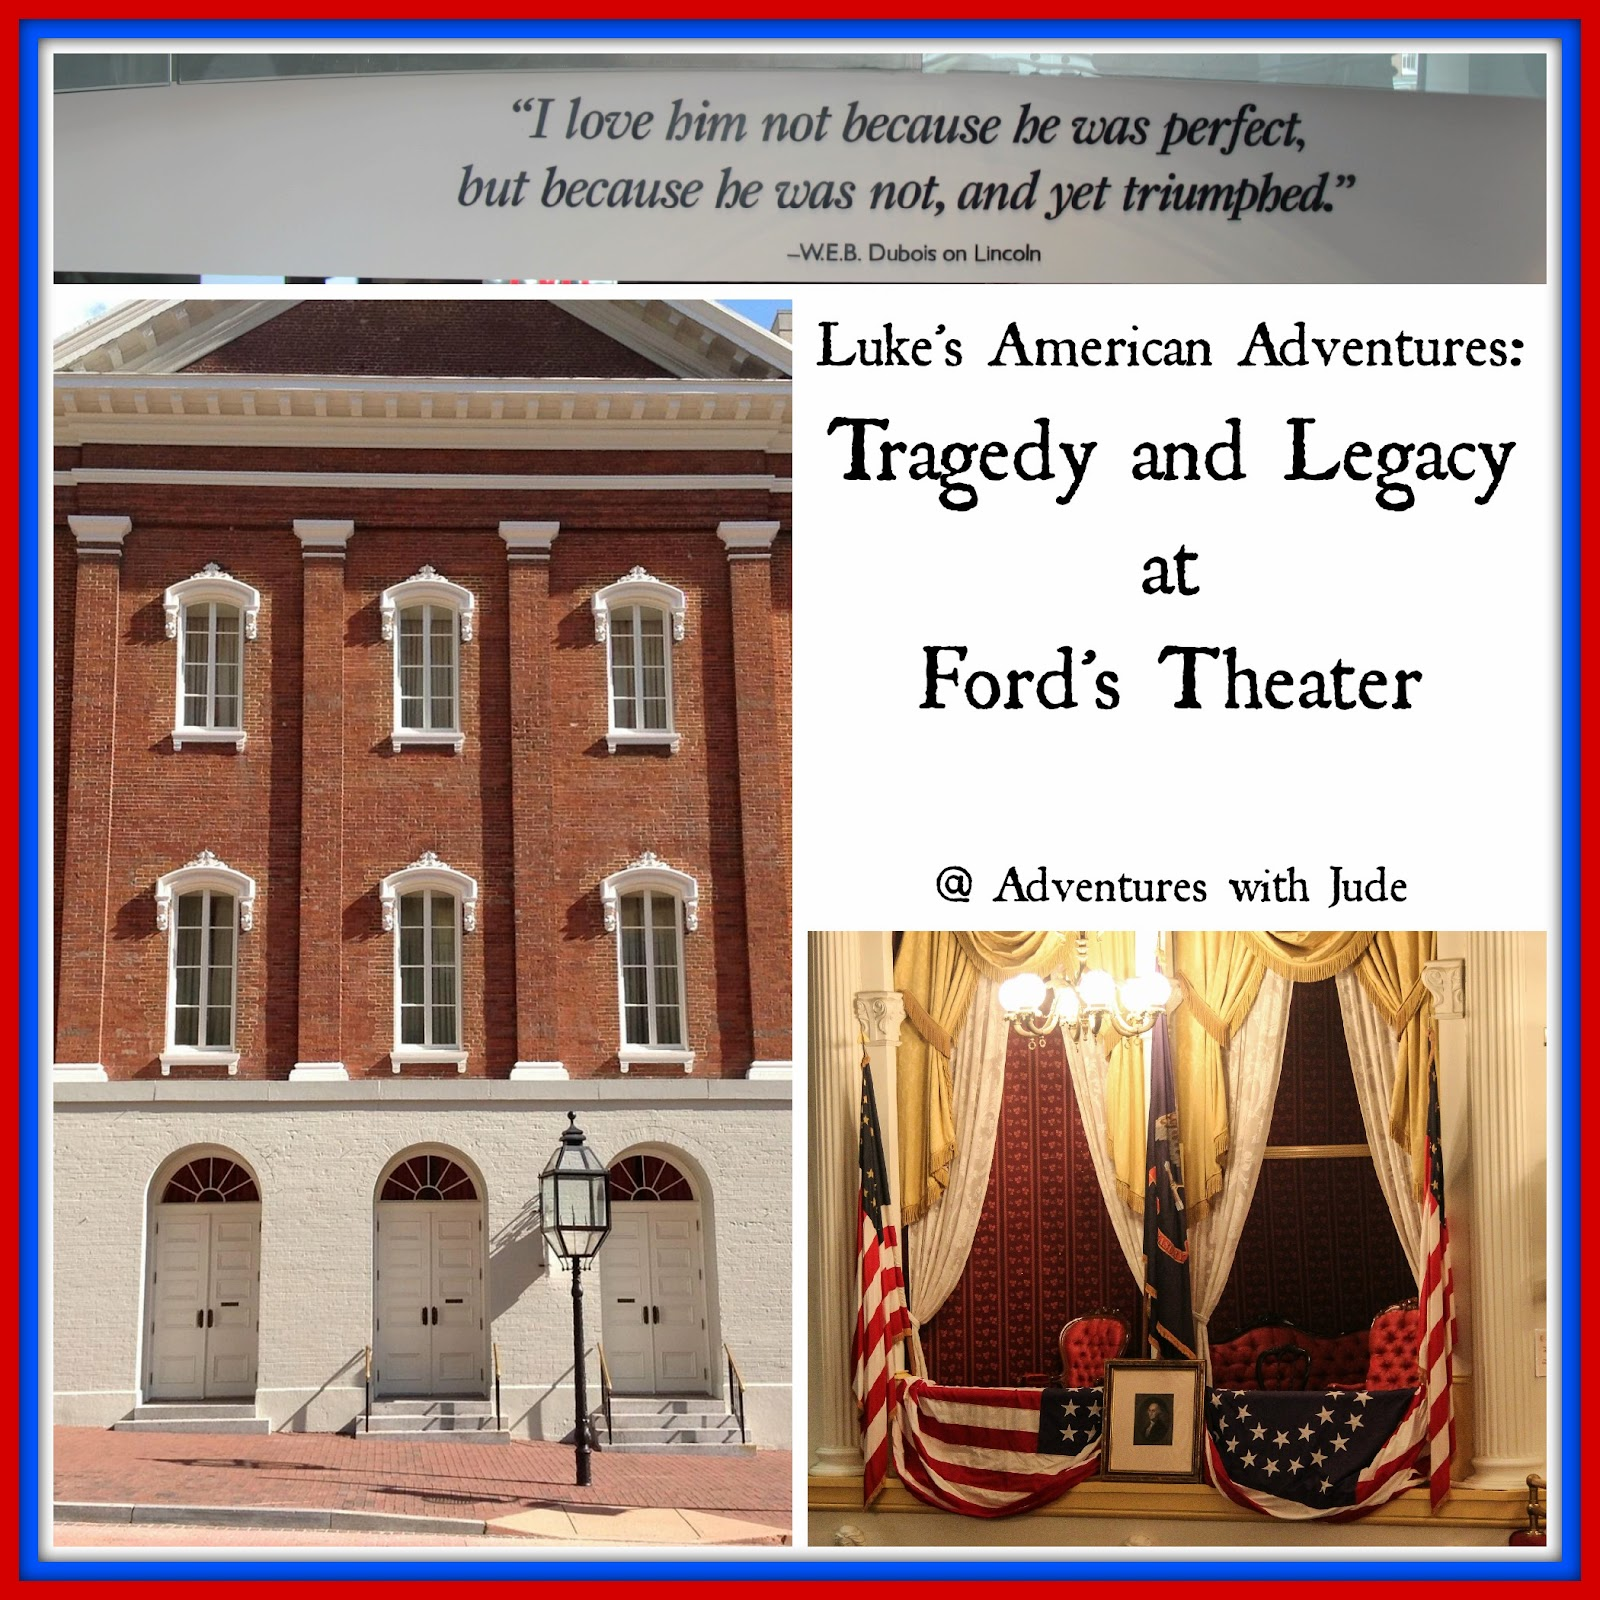 Tragedy and Legacy at Ford's Theater